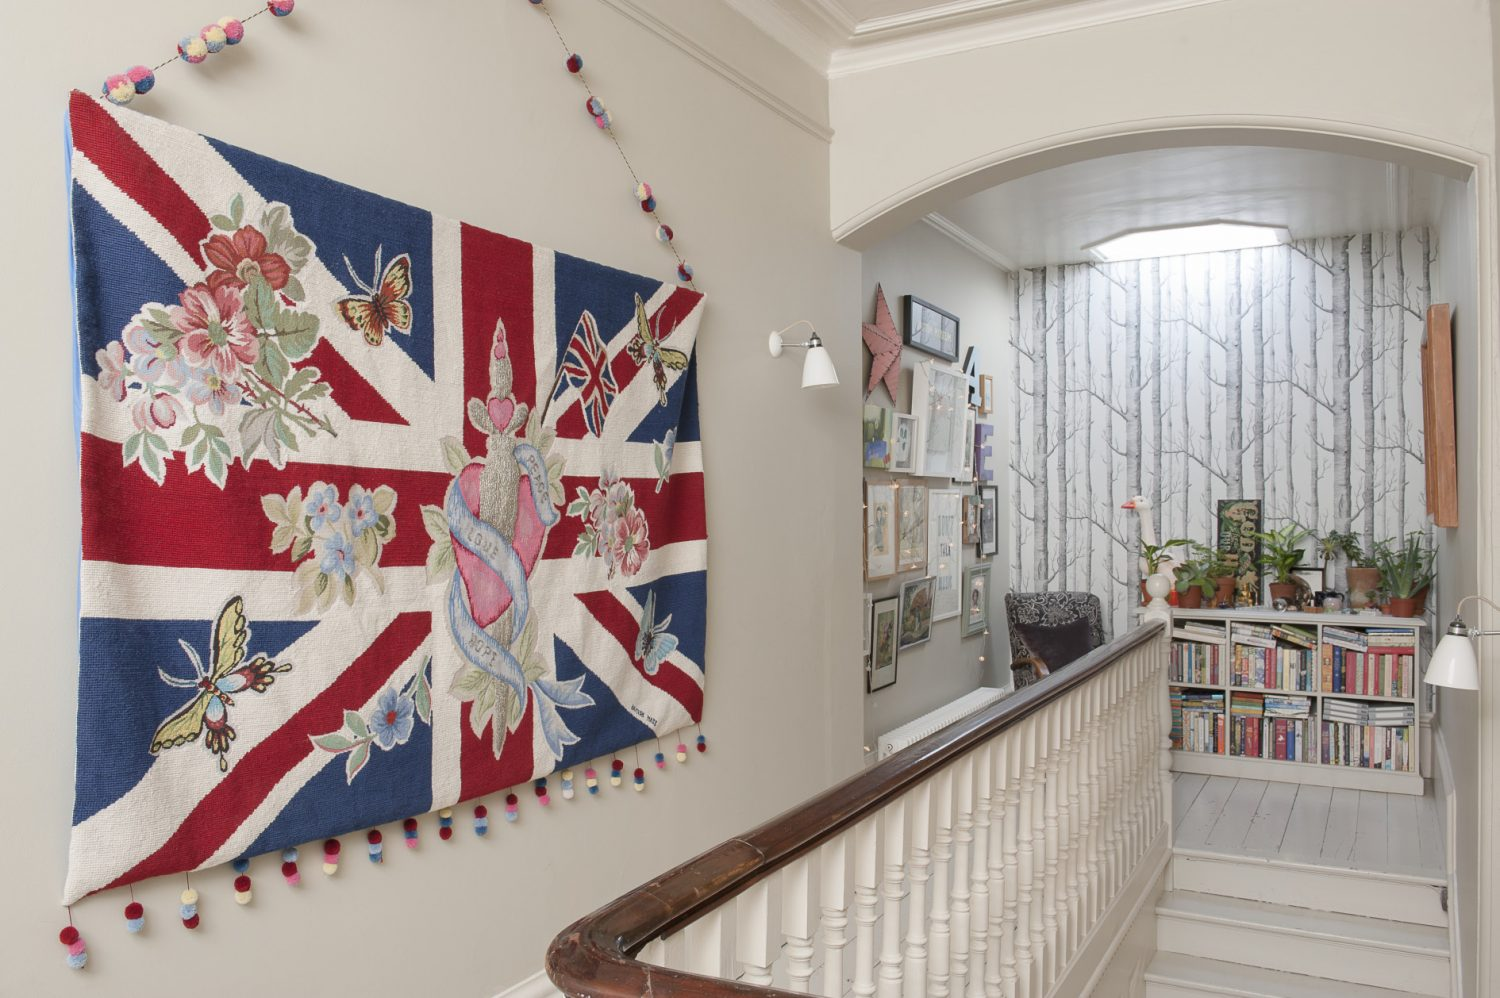 One end of the landing is papered in 'Woods' by Cole & Son and looks rather like a forest of bare birch trees. A giant embroidered and beaded Union Jack tapestry hangs boldly on one wall, whilst a comfy armchair is placed next to a set of full-to-bursting bookshelves